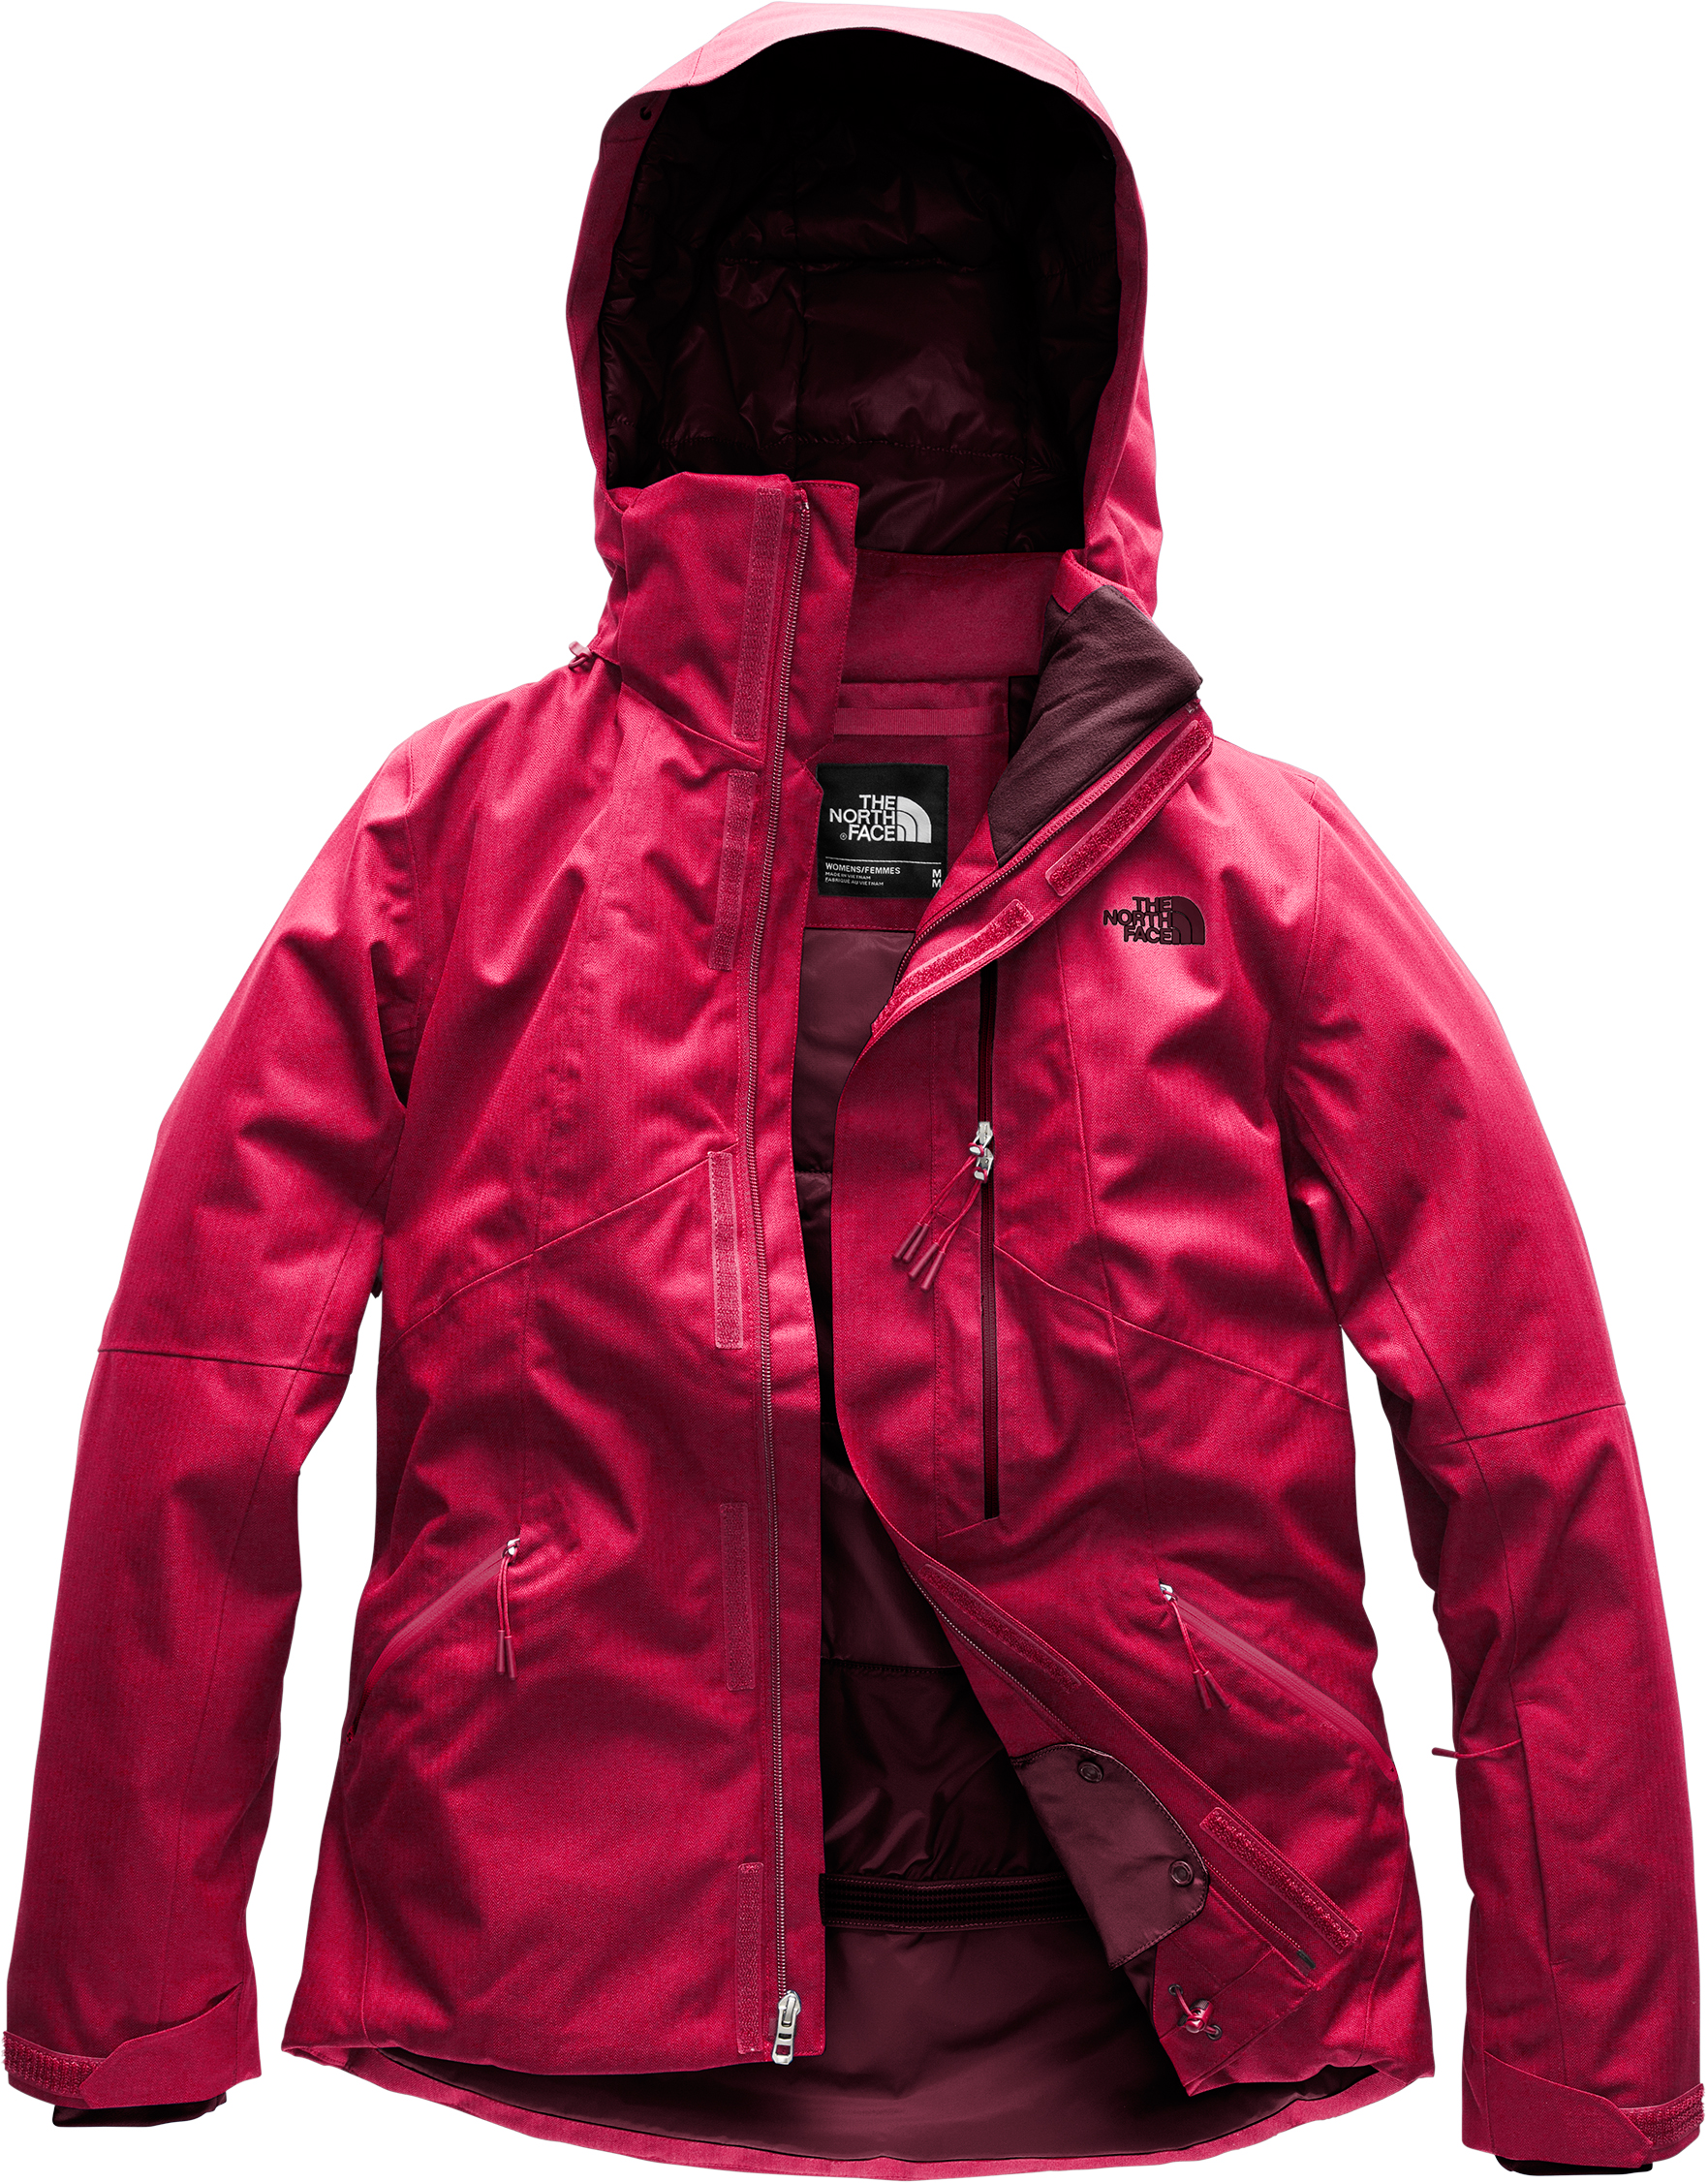 43fbf9cfb3 Manteau Gatekeeper de The North Face - Femmes | MEC